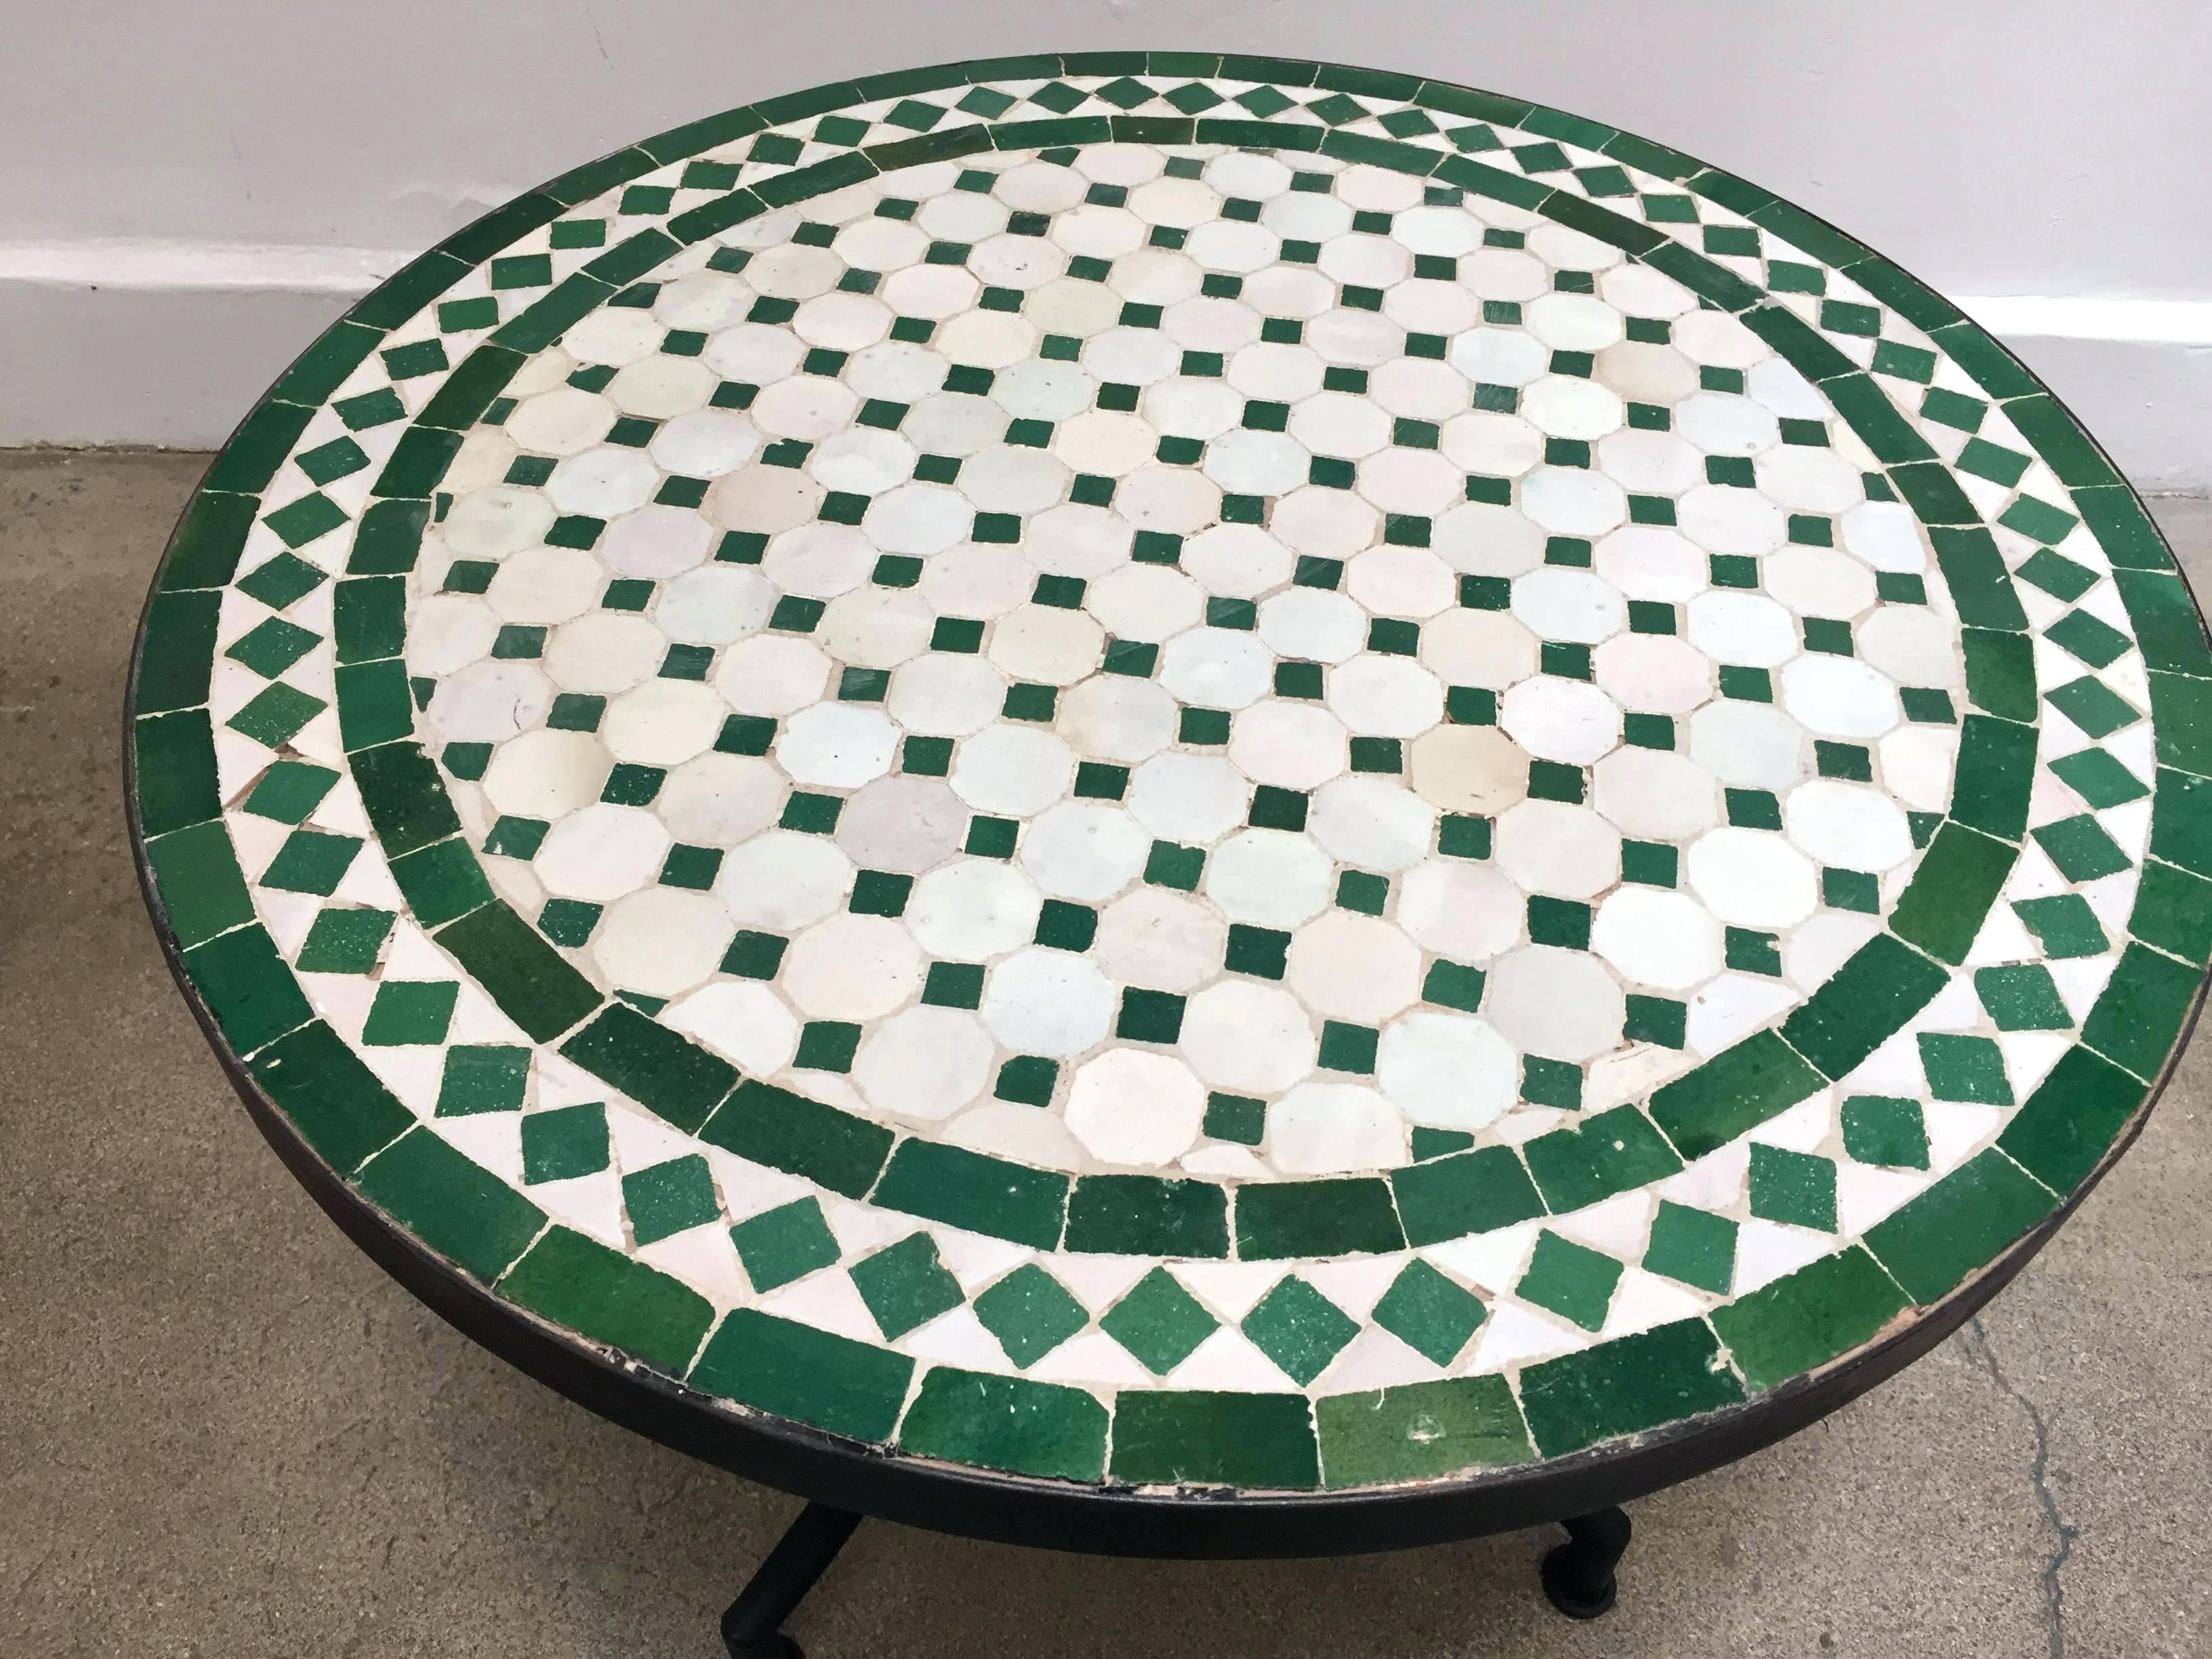 mosaic tile outdoor side table accent low iron base green and white for home theater ideas library country magazine subscription small shelves target round nest coffee tables zinc